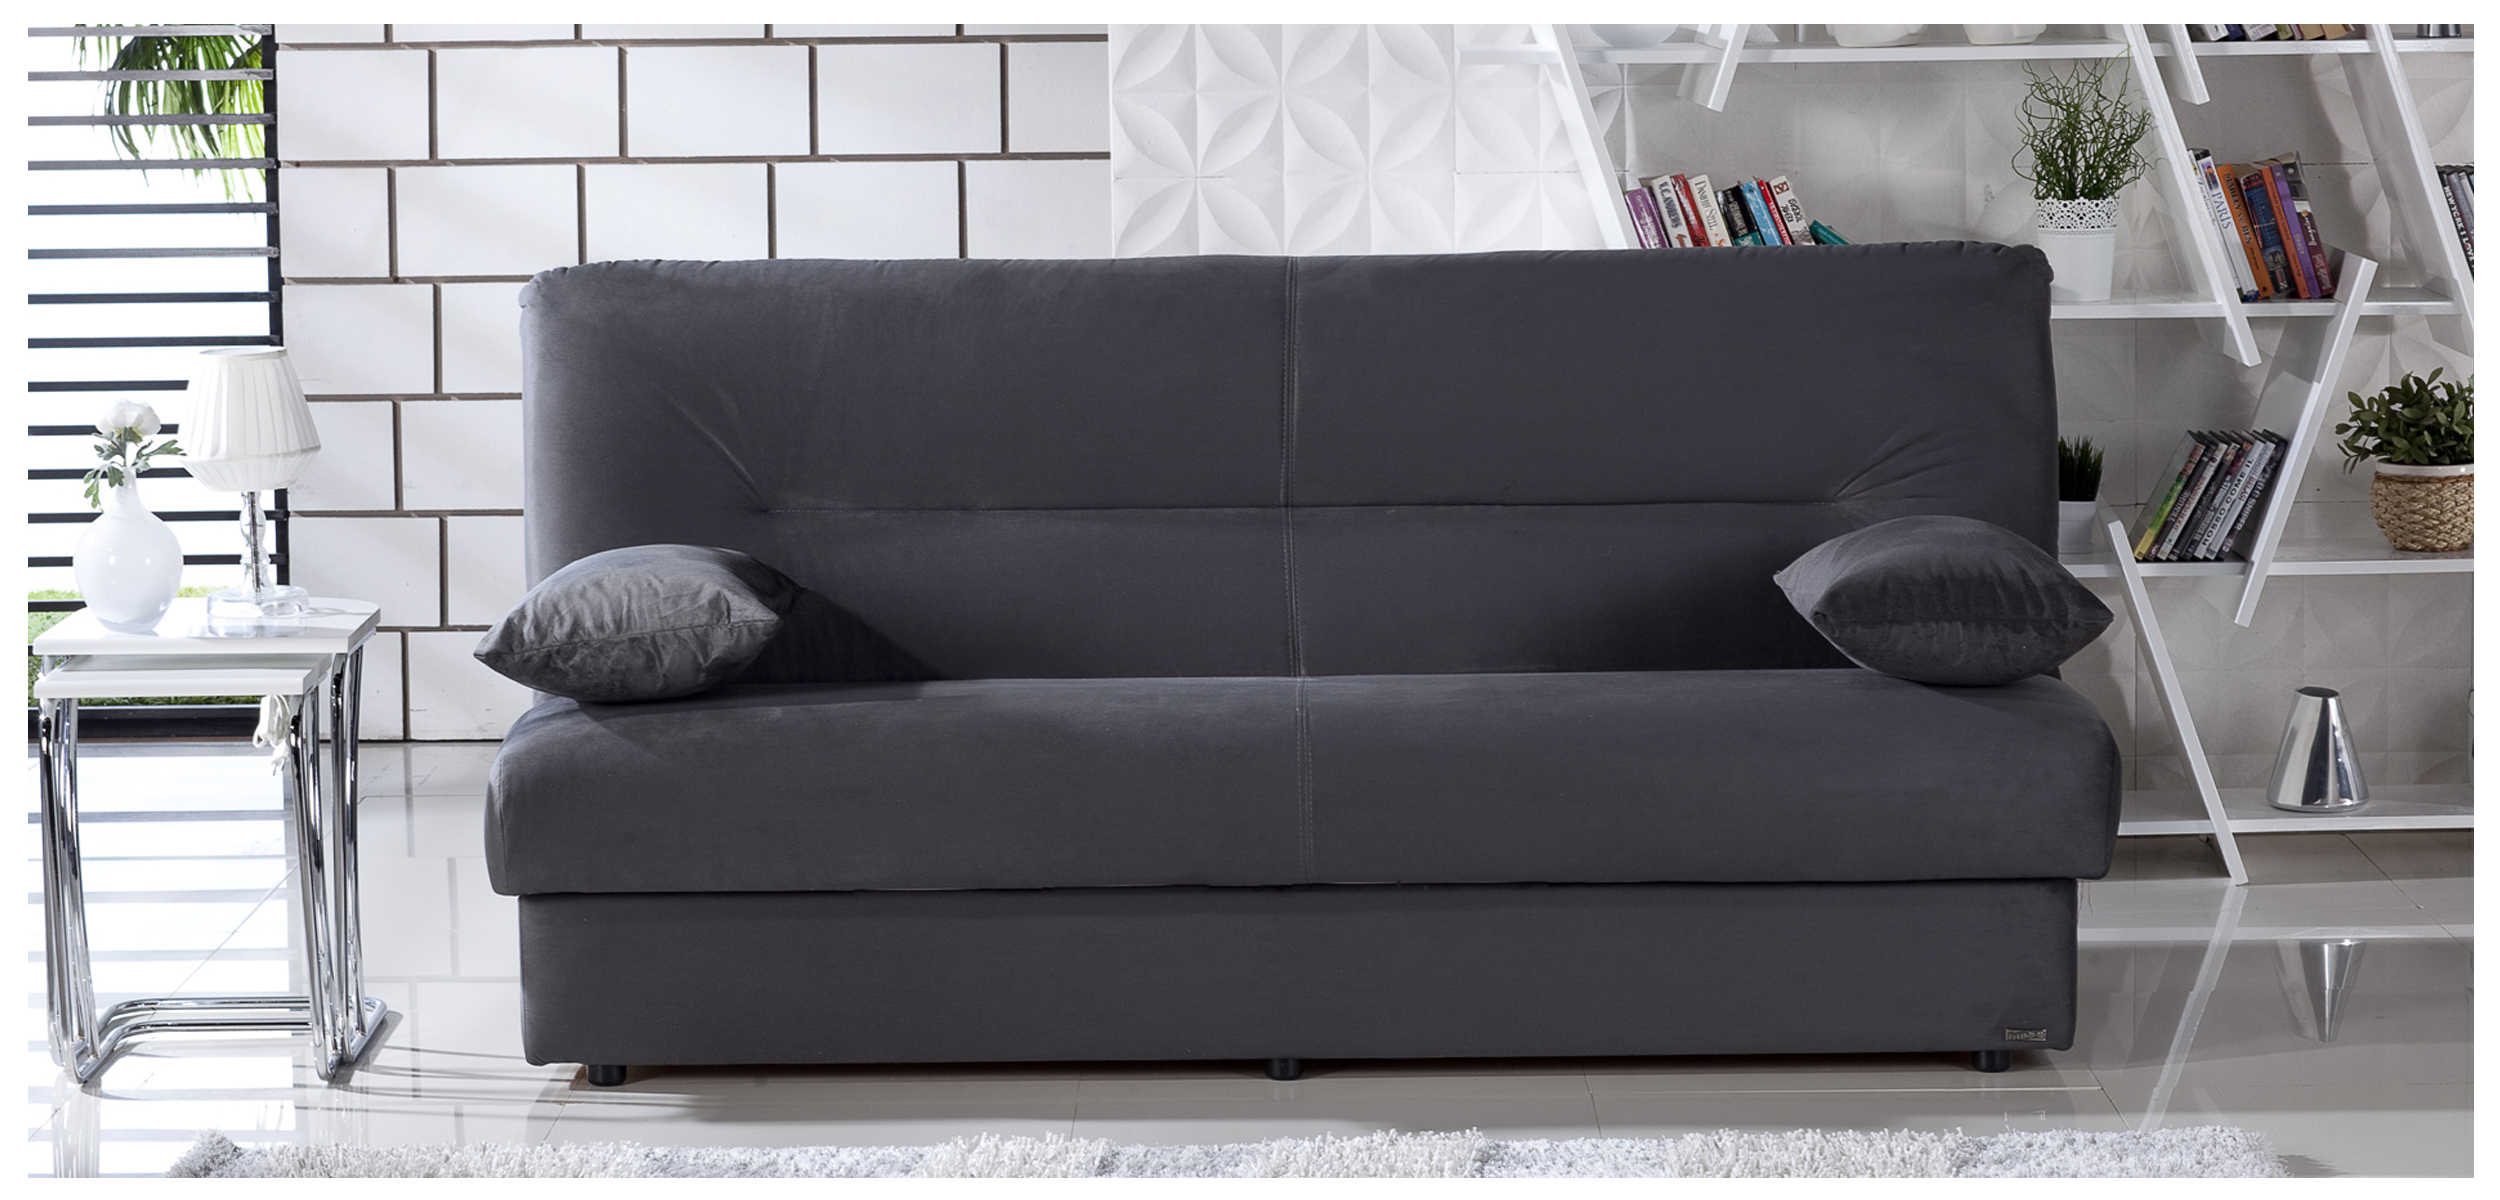 Regata Rainbow Dark Gray Convertible Sofa Bed With Storage